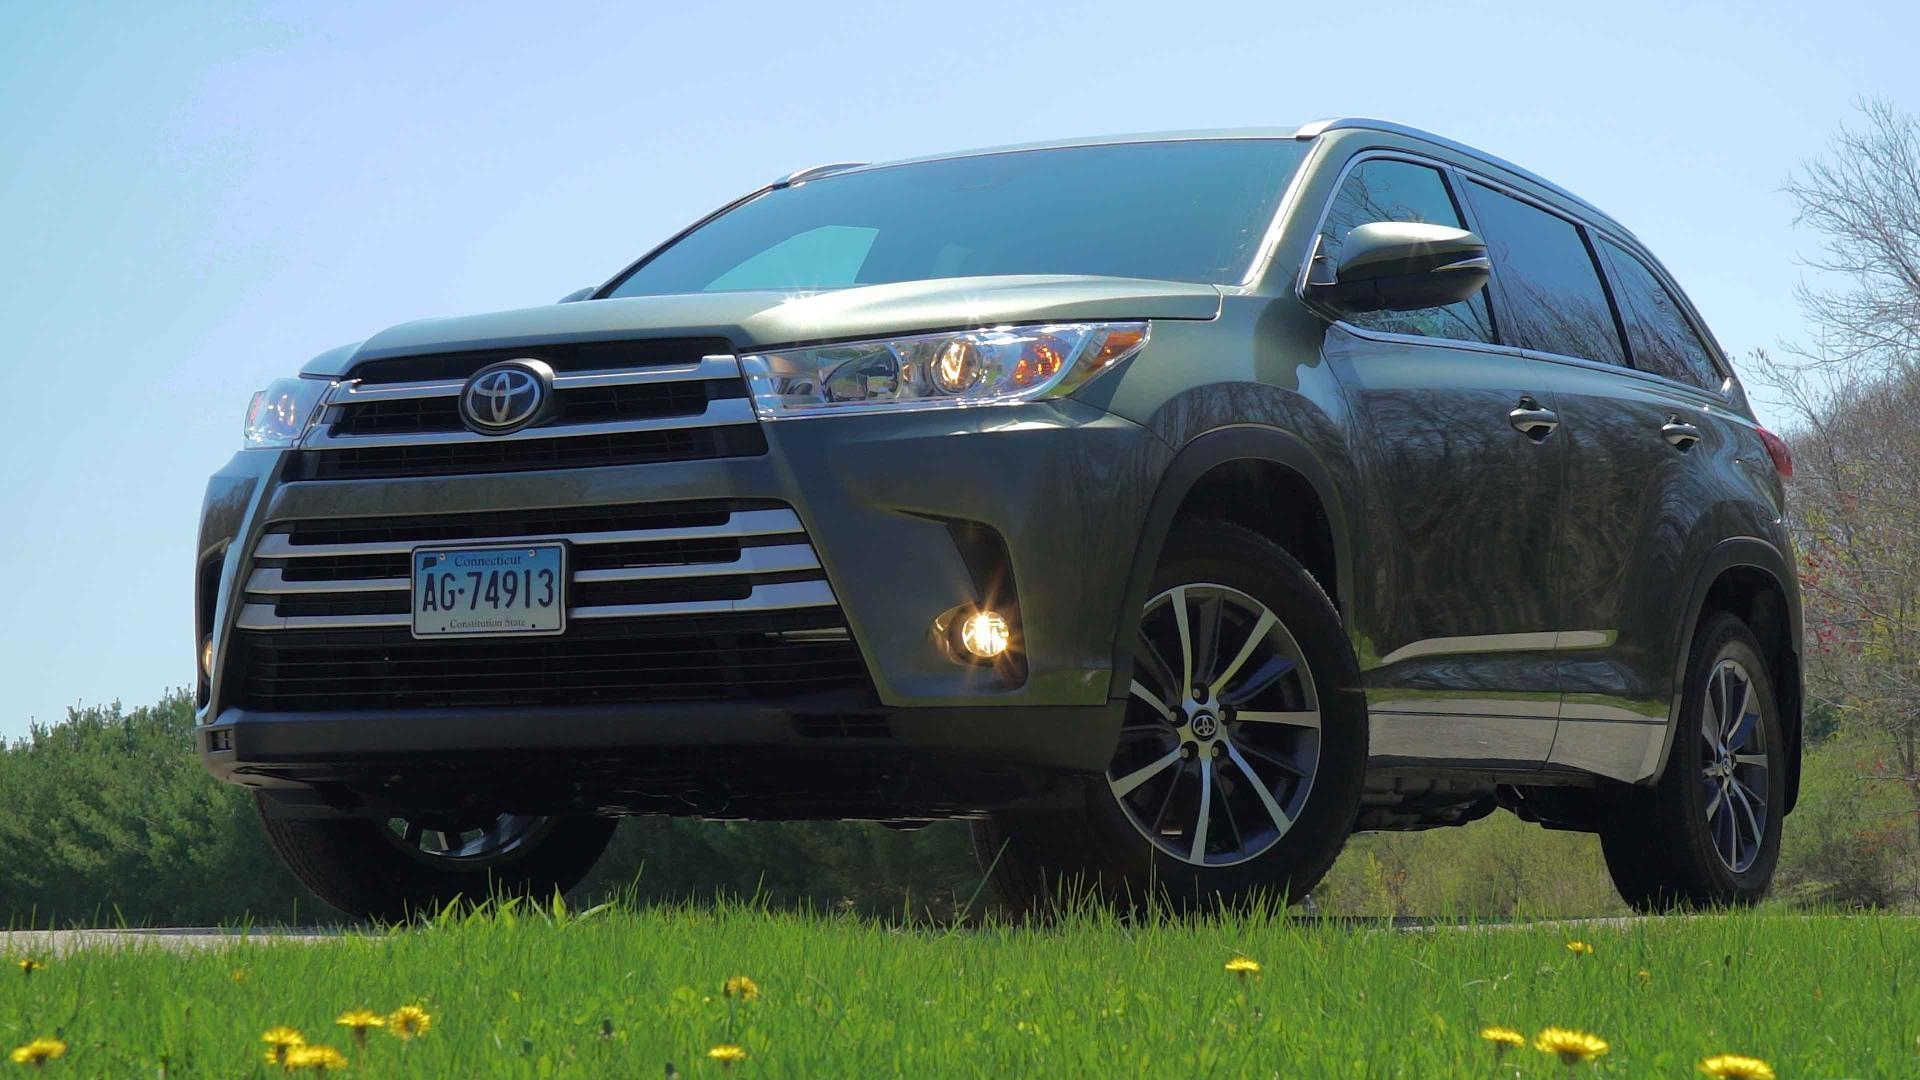 suvs midsize size img mid highlander mpg toyota list hybrid articles com ratings which the highest have suv news oem cars